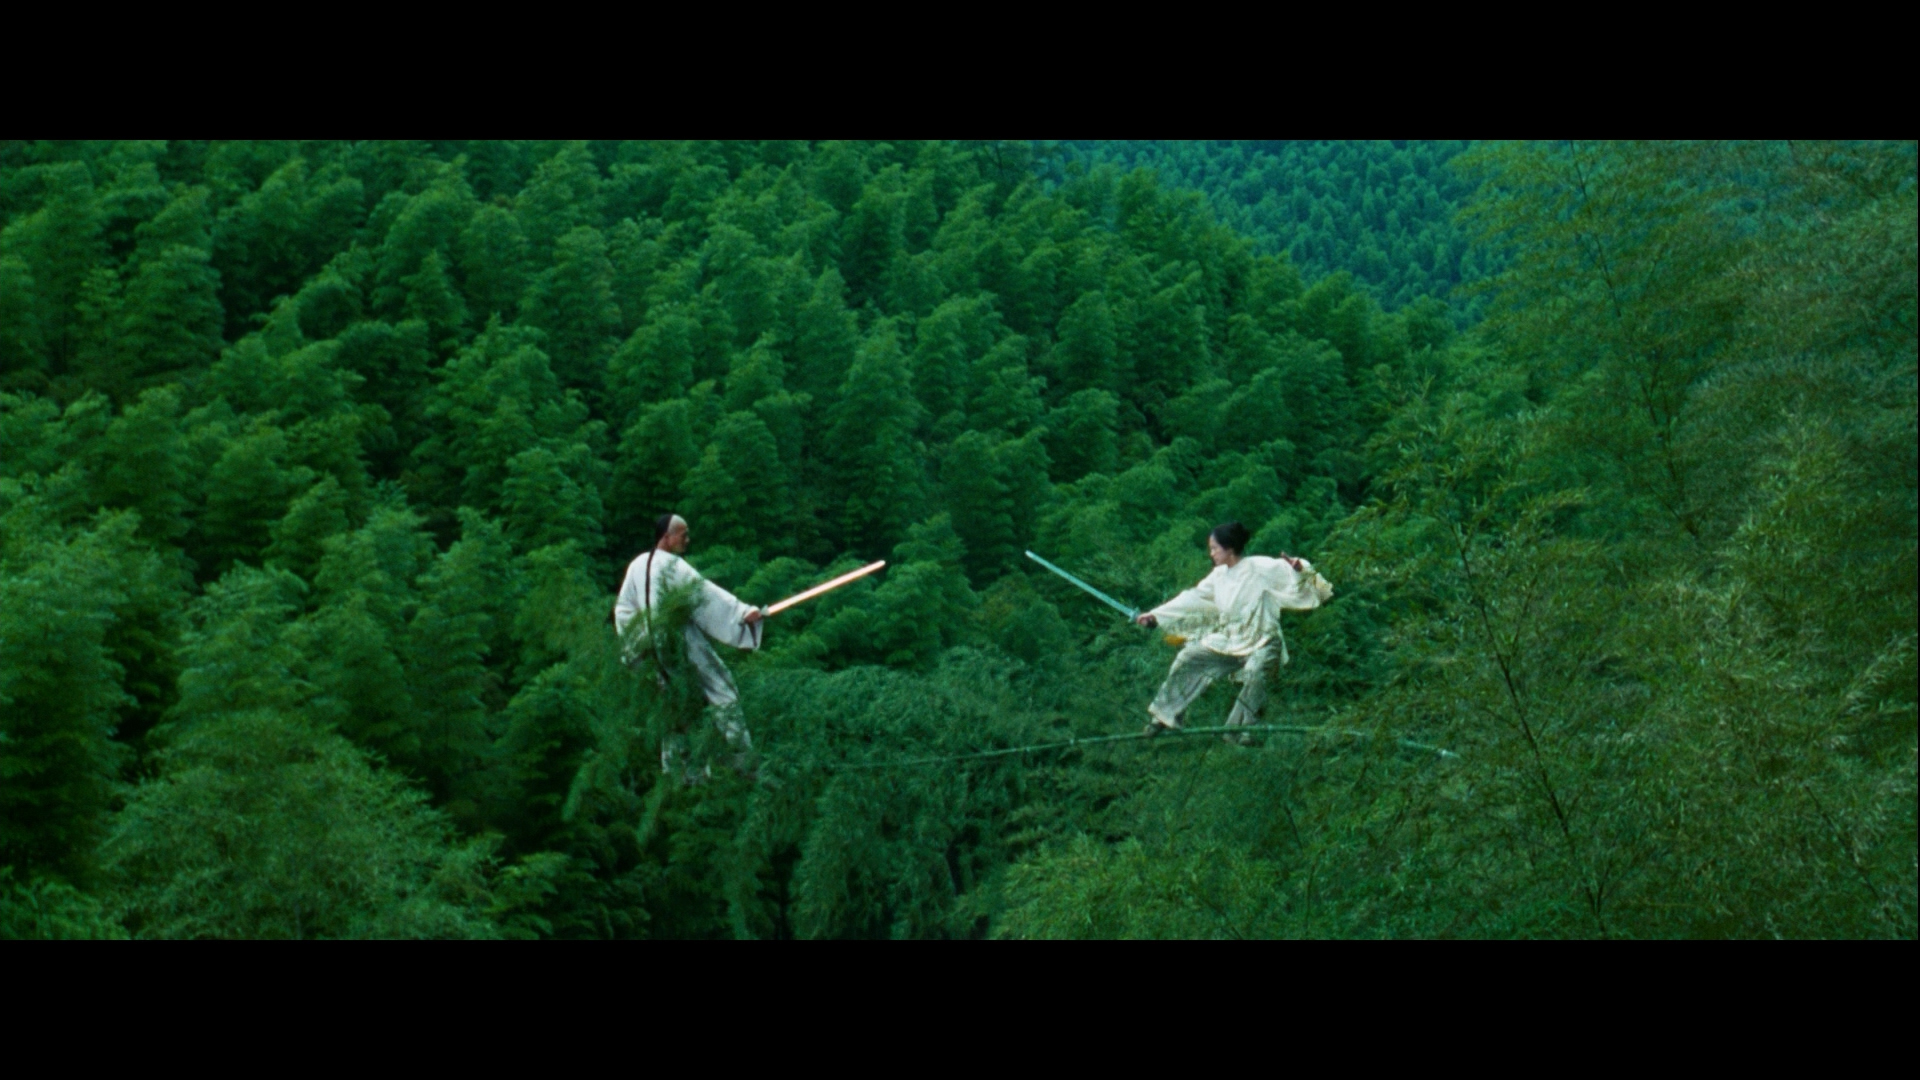 crouching dragon essay hidden tiger A key idea explored by crouching tiger hidden dragon lies in the genealogy of the film as an international production a key aspect of the distinctive visual sought after by lee, is the depiction of eastern thought versus western principles.